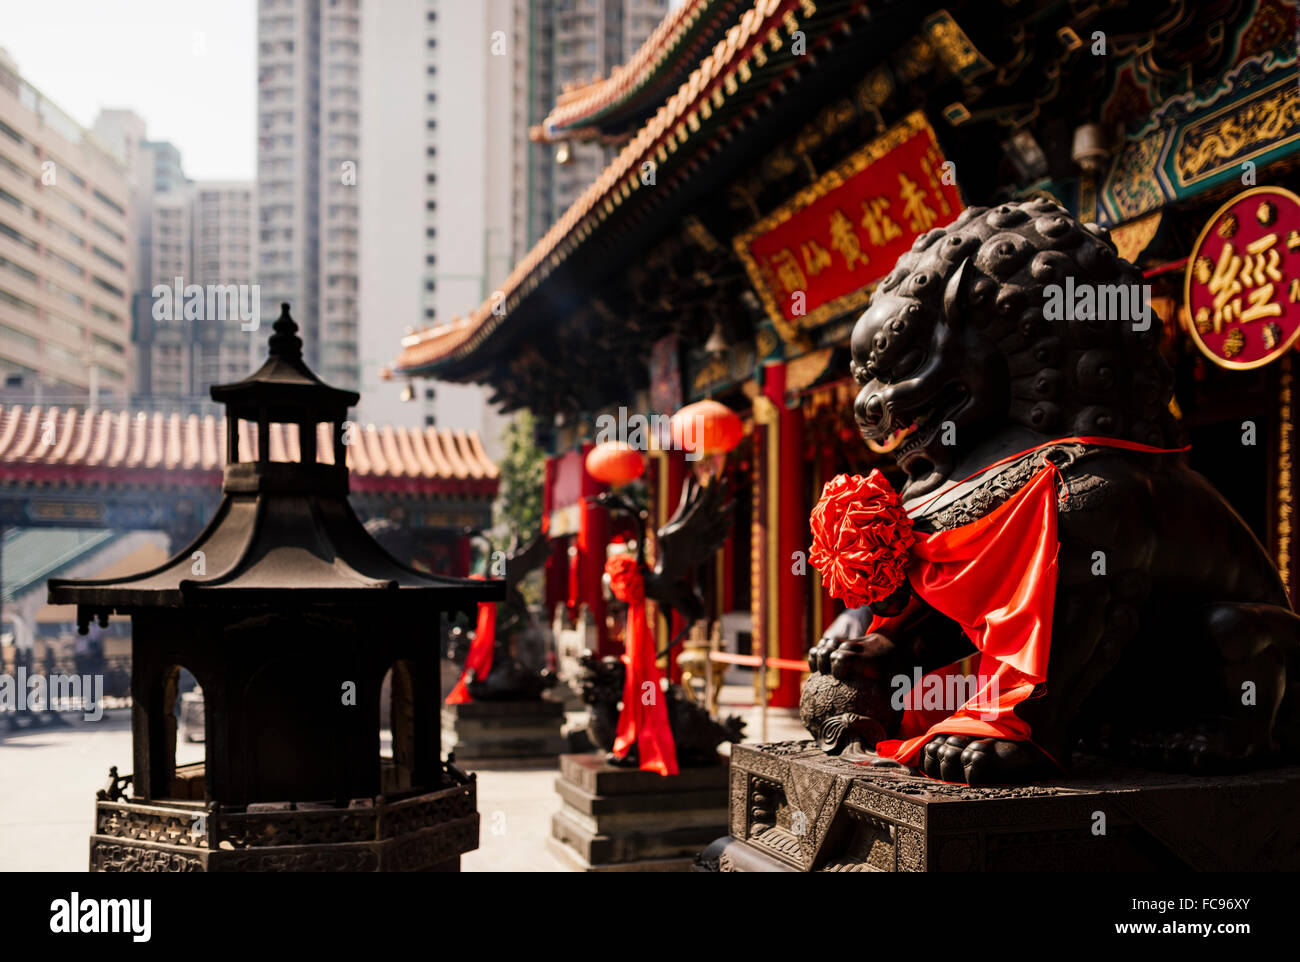 L'extérieur du Temple Wong Tai Sin, Kowloon, Hong Kong, Chine, Asie Photo Stock